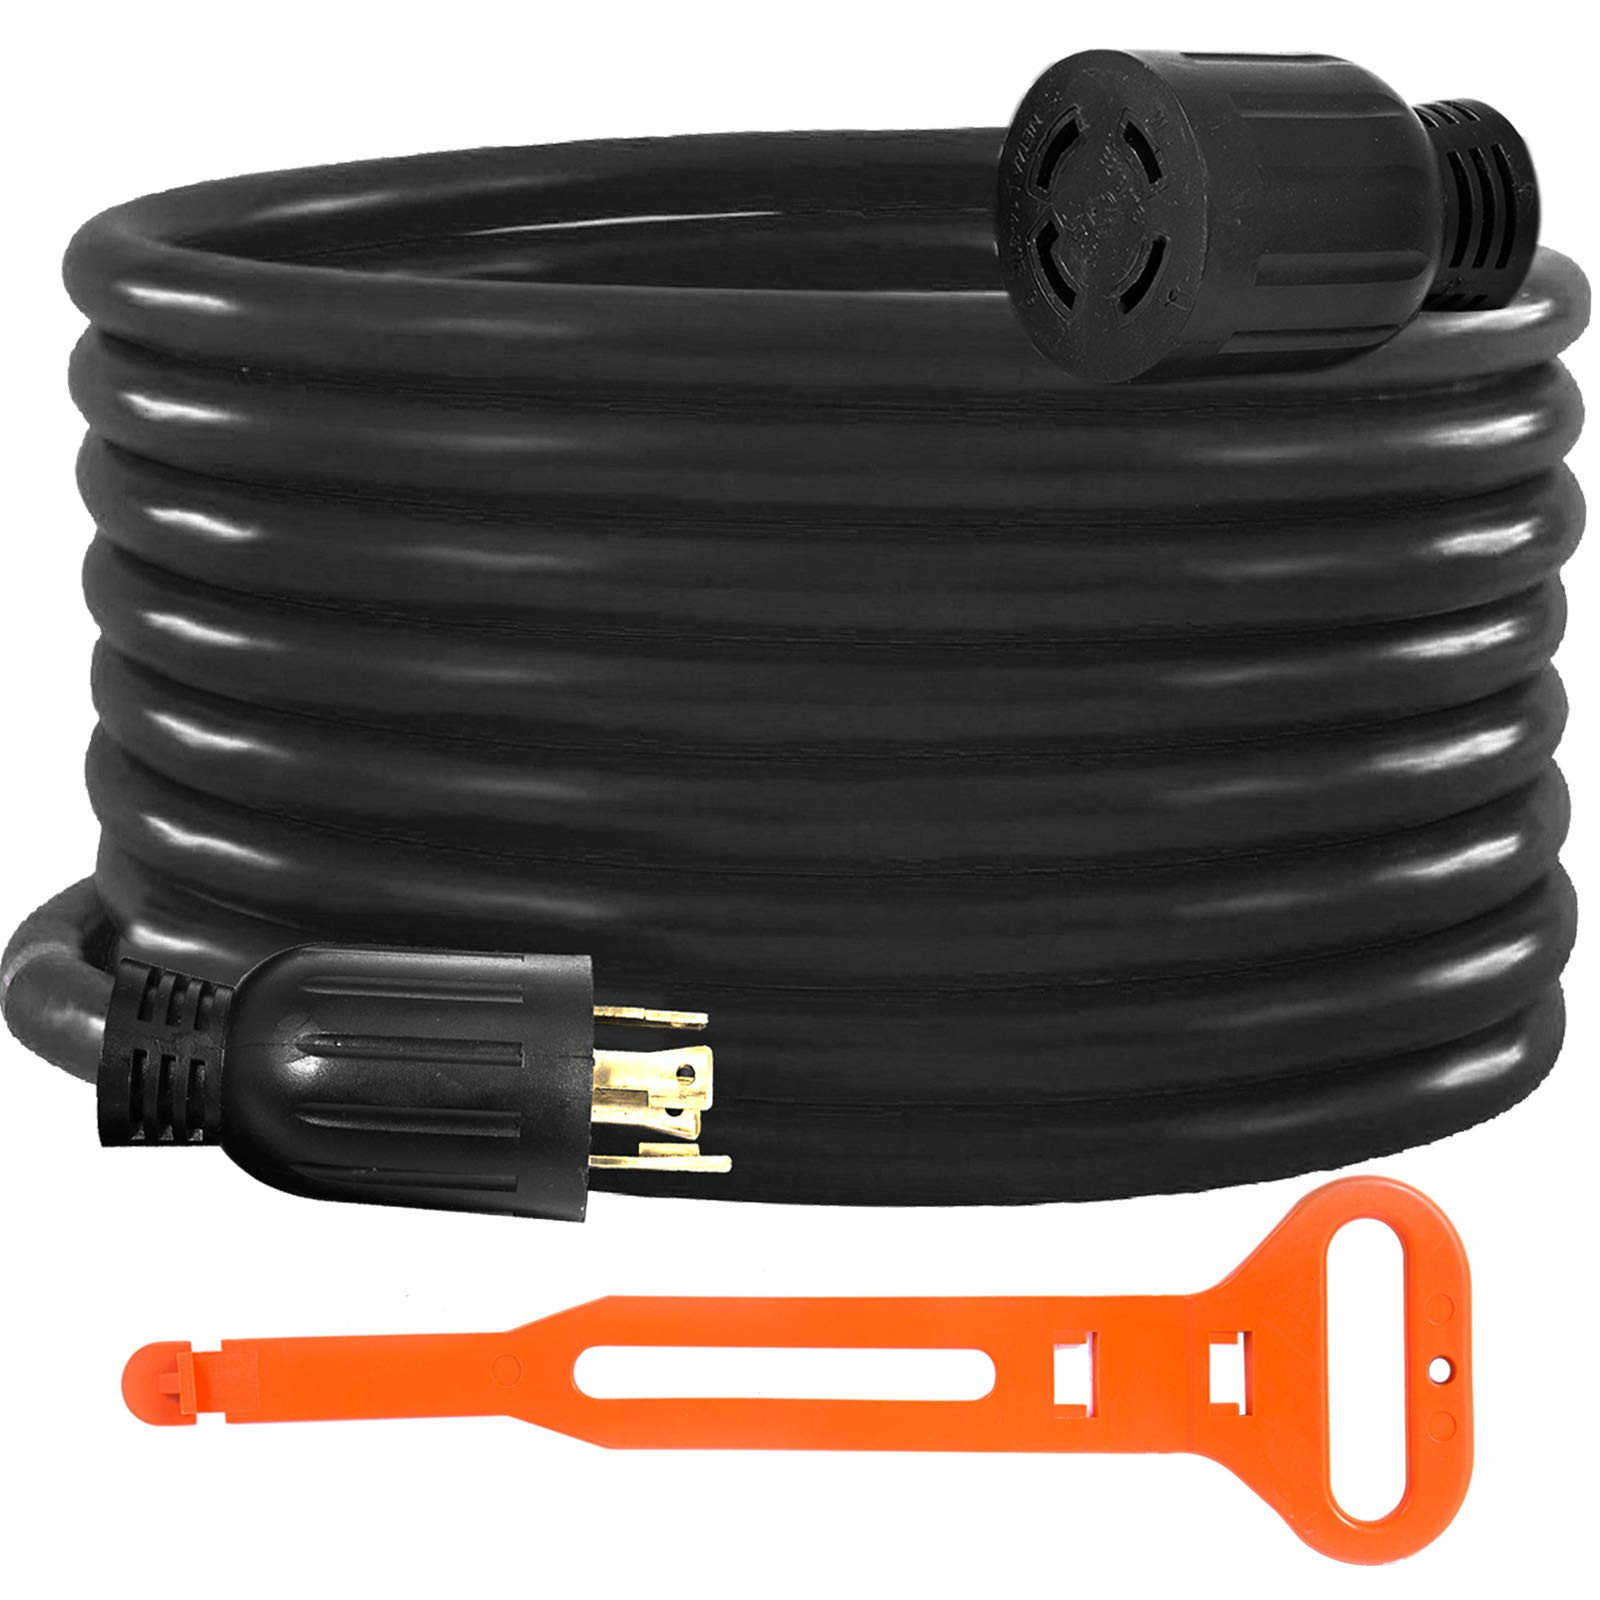 Mophorn 50FT 30 Amp Generator Extension Cord 4 Wire 10 Gauge Generator Cord 125V/250V UL Listed Generator Power Cord Twist Lock Connectors (50 FT 30 Amp)